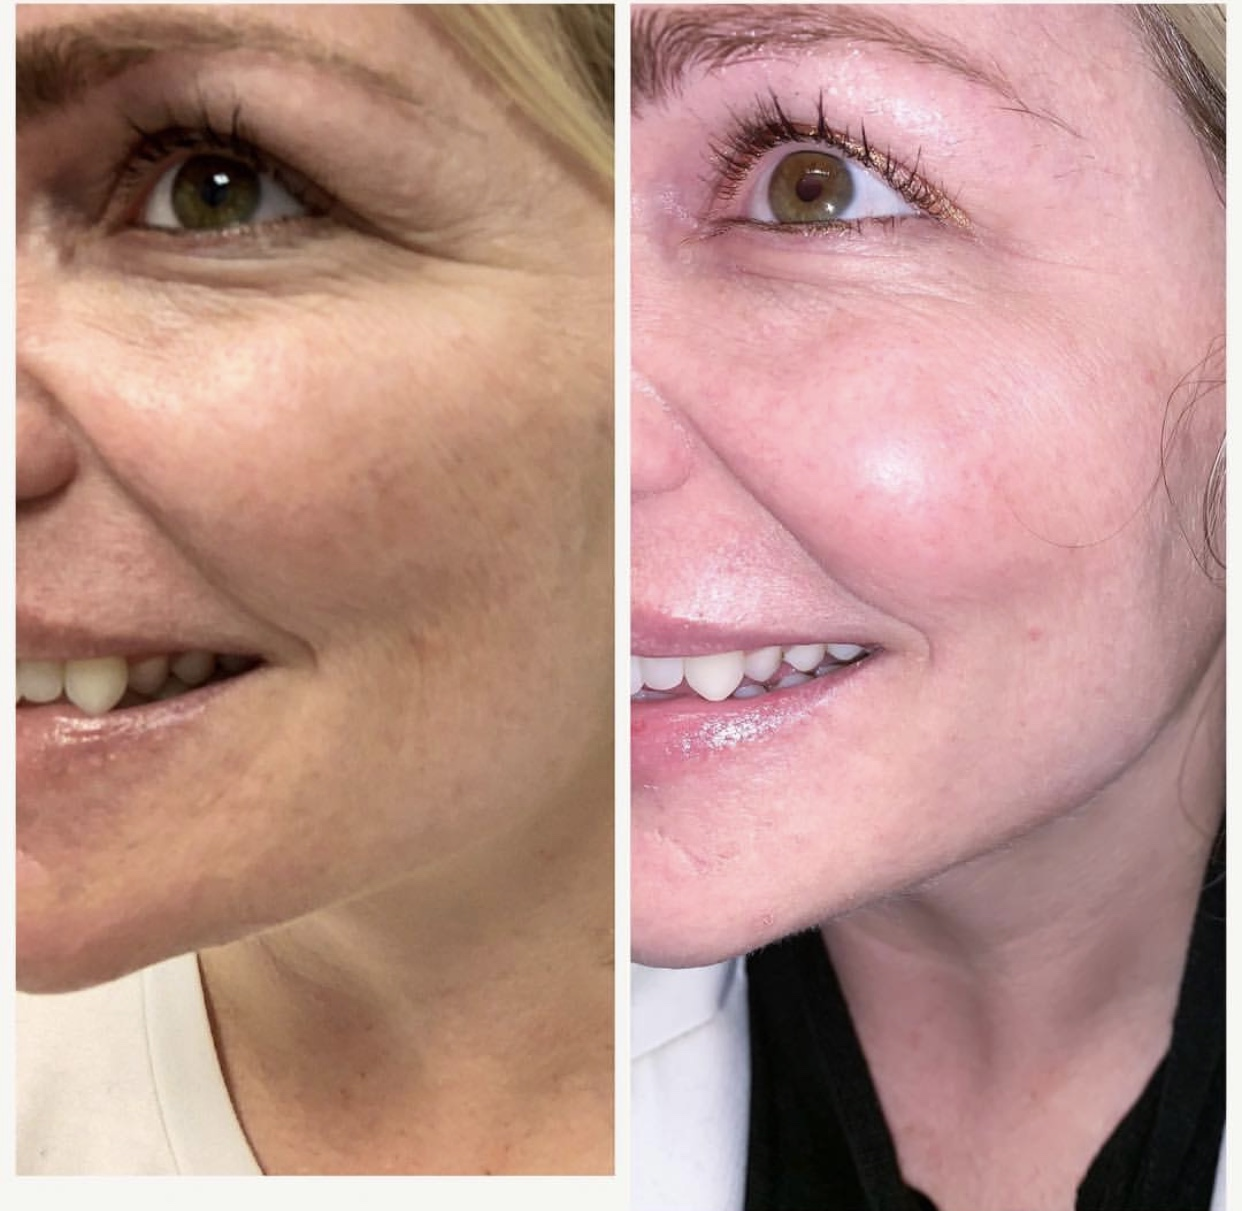 The Magic of BOTOX, yes the lighting is different, but not even good lighting can eliminate and relax wrinkles